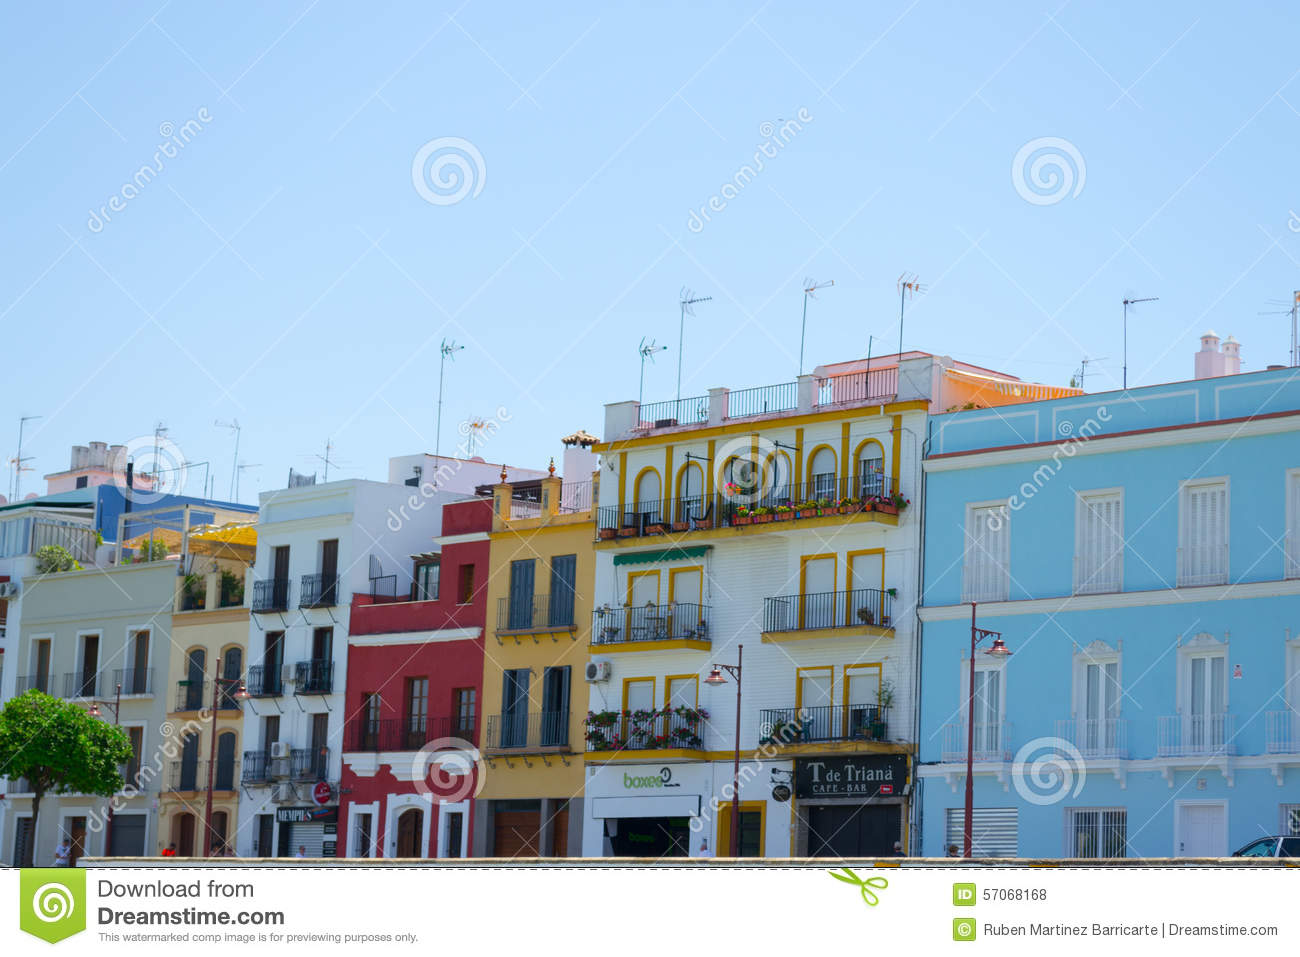 Colorfullhuizen in Triana